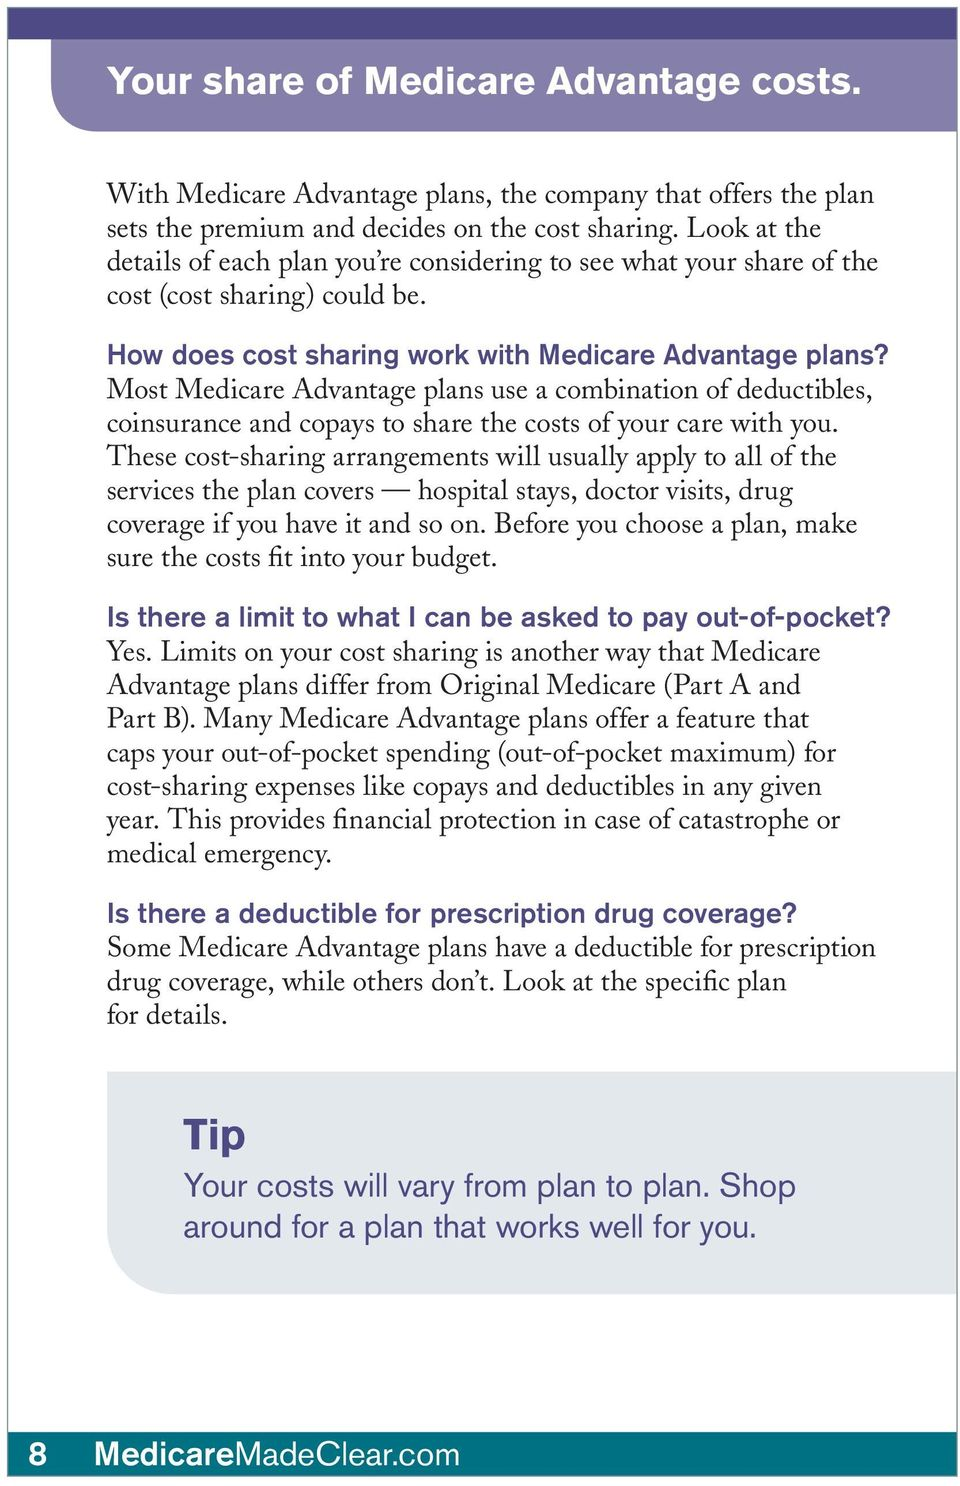 Most Medicare Advantage plans use a combination of deductibles, coinsurance and copays to share the costs of your care with you.